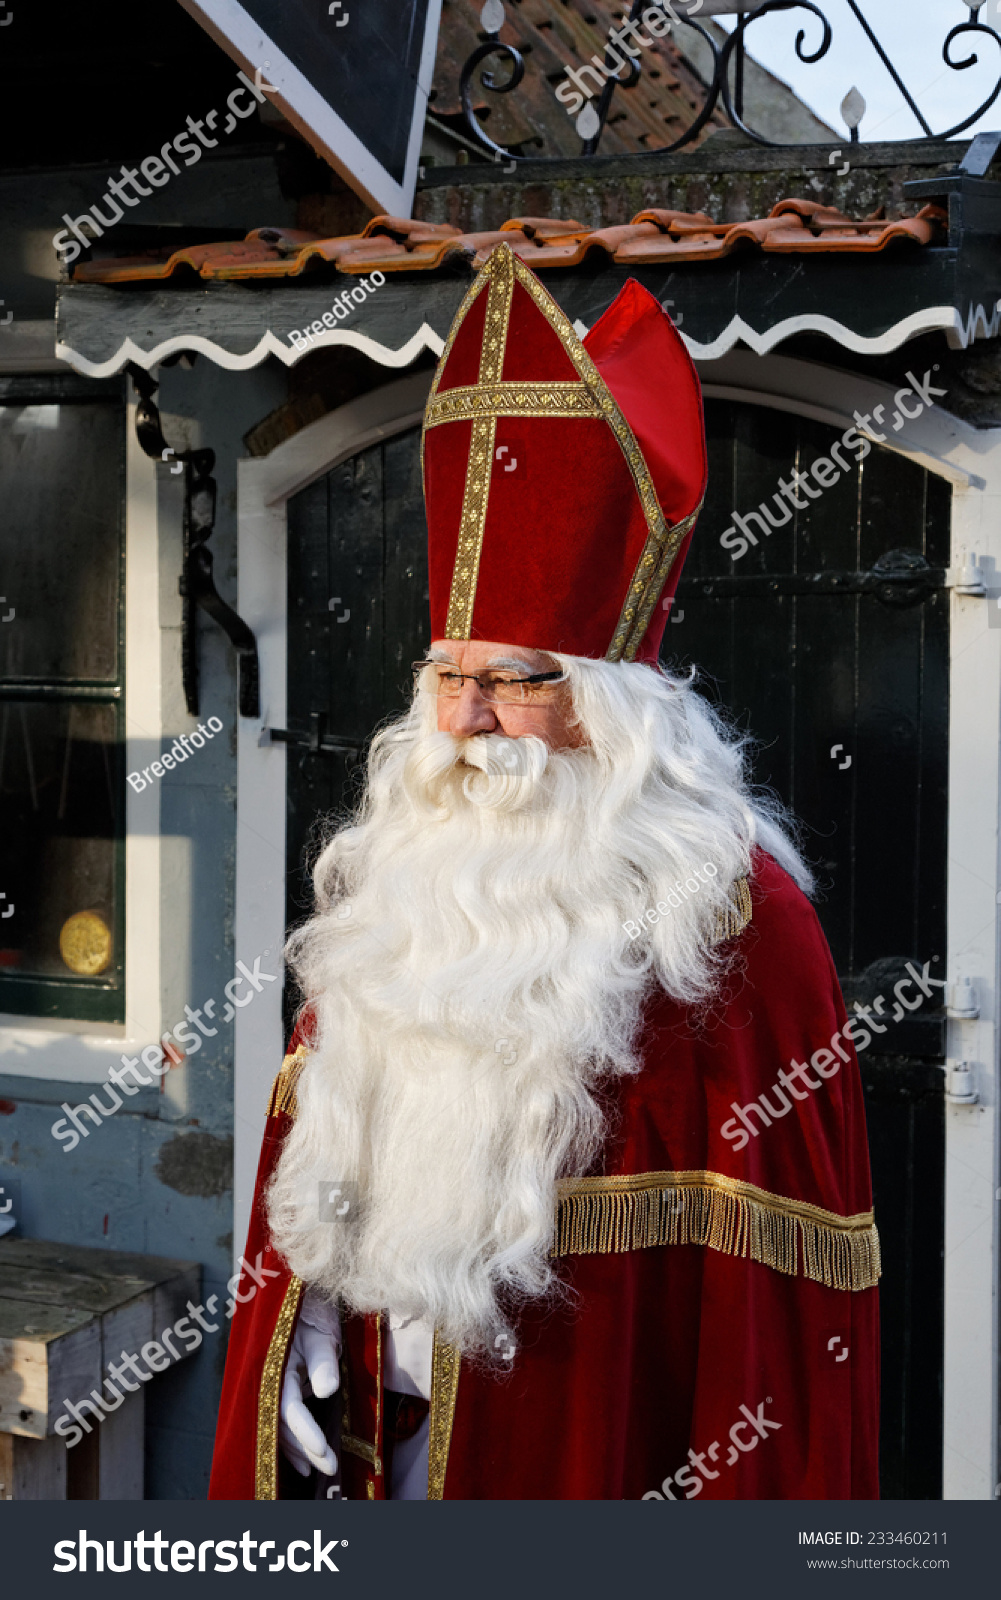 saint nicholas costume looking stock photo 233460211